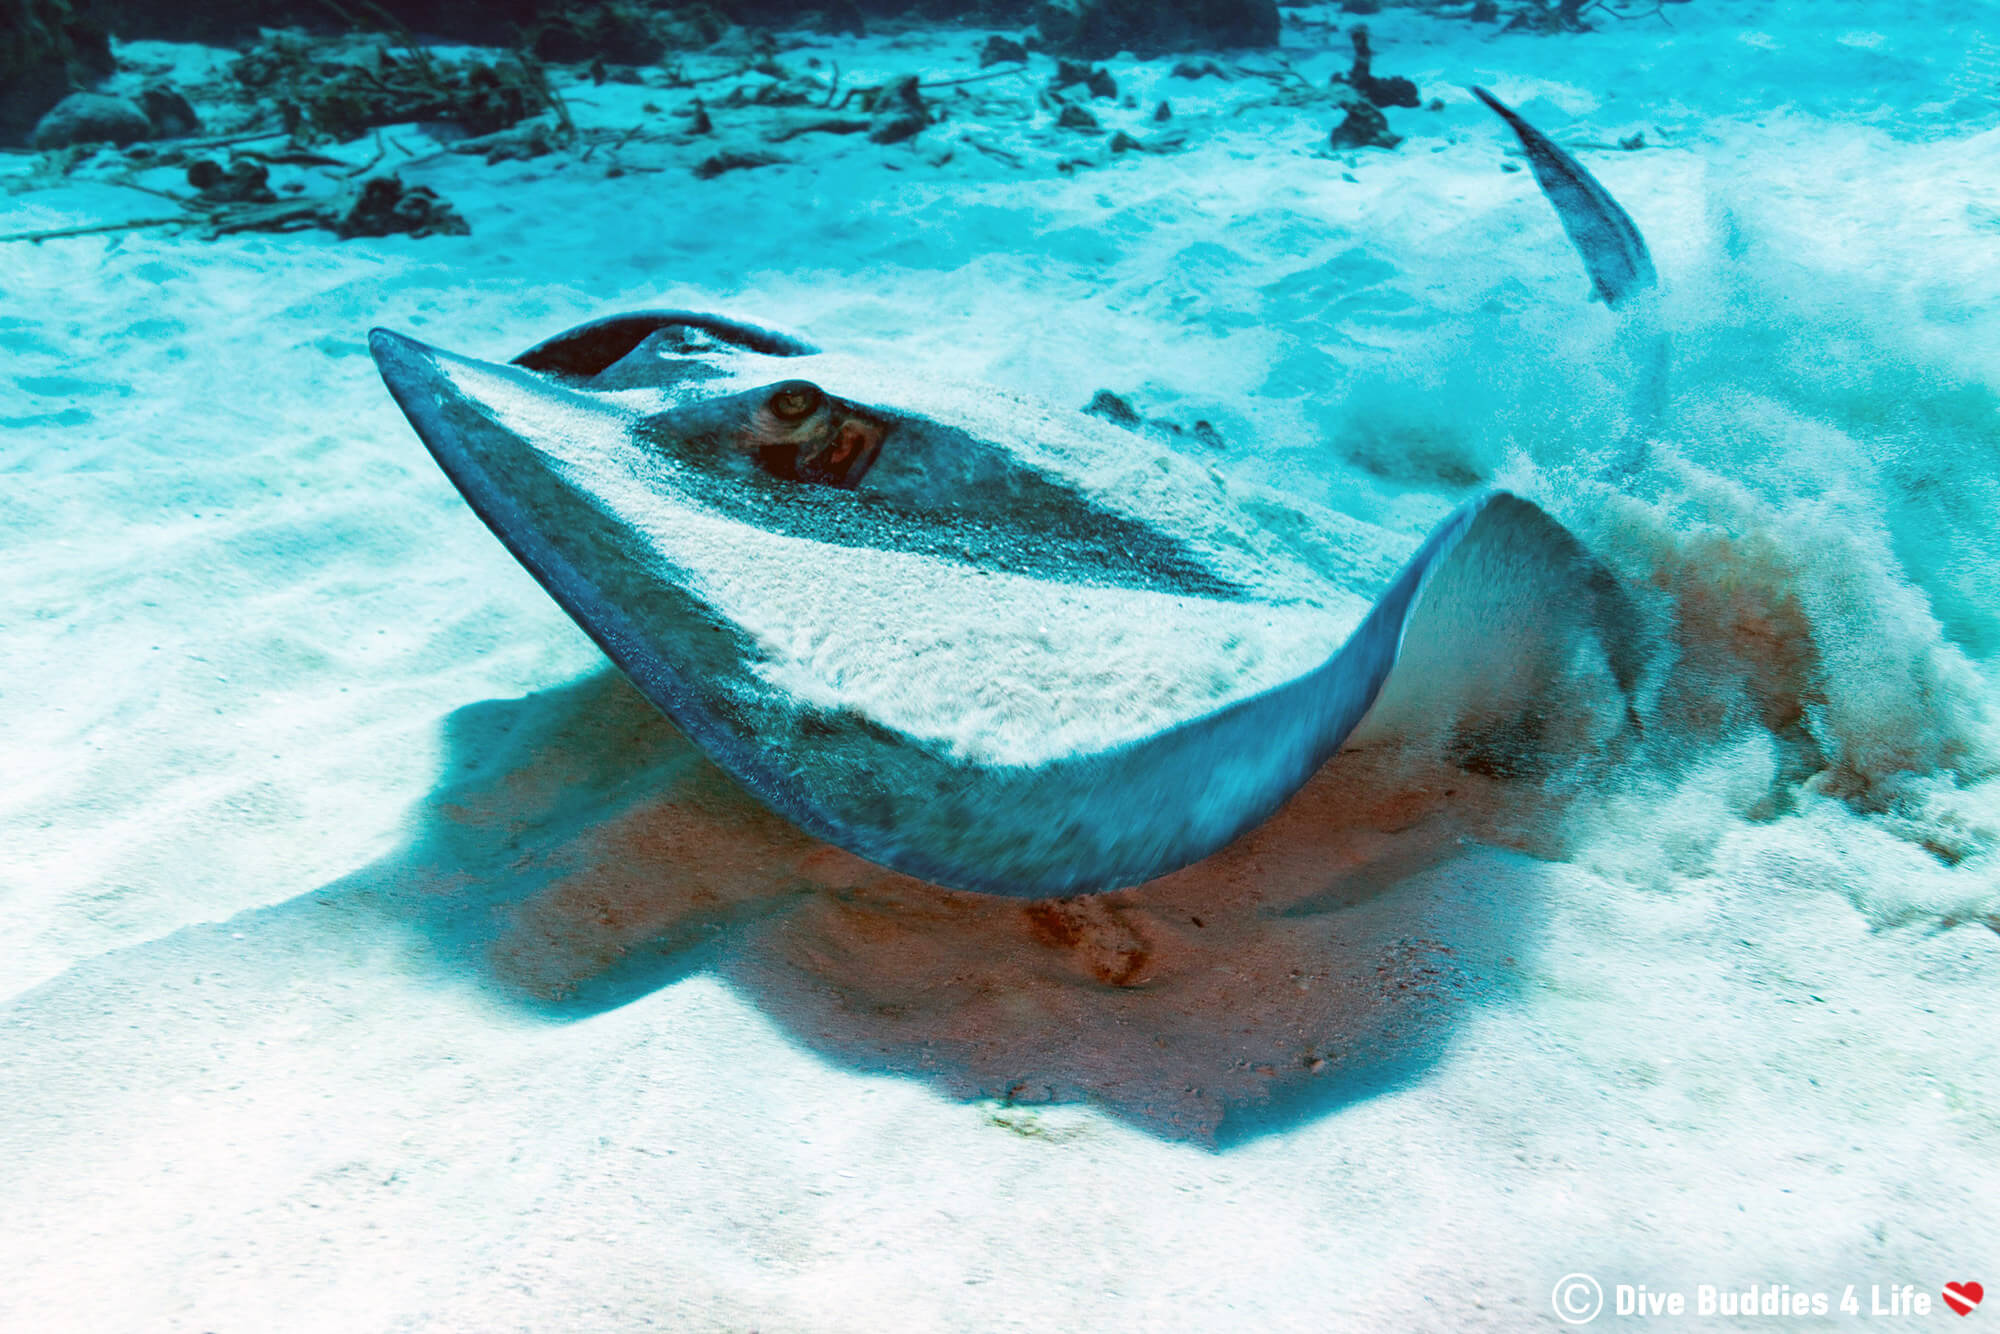 A Large Southern Stingray In The Sand Of The White Hole East Coast Diving Site, Bonaire, Dutch Caribbean